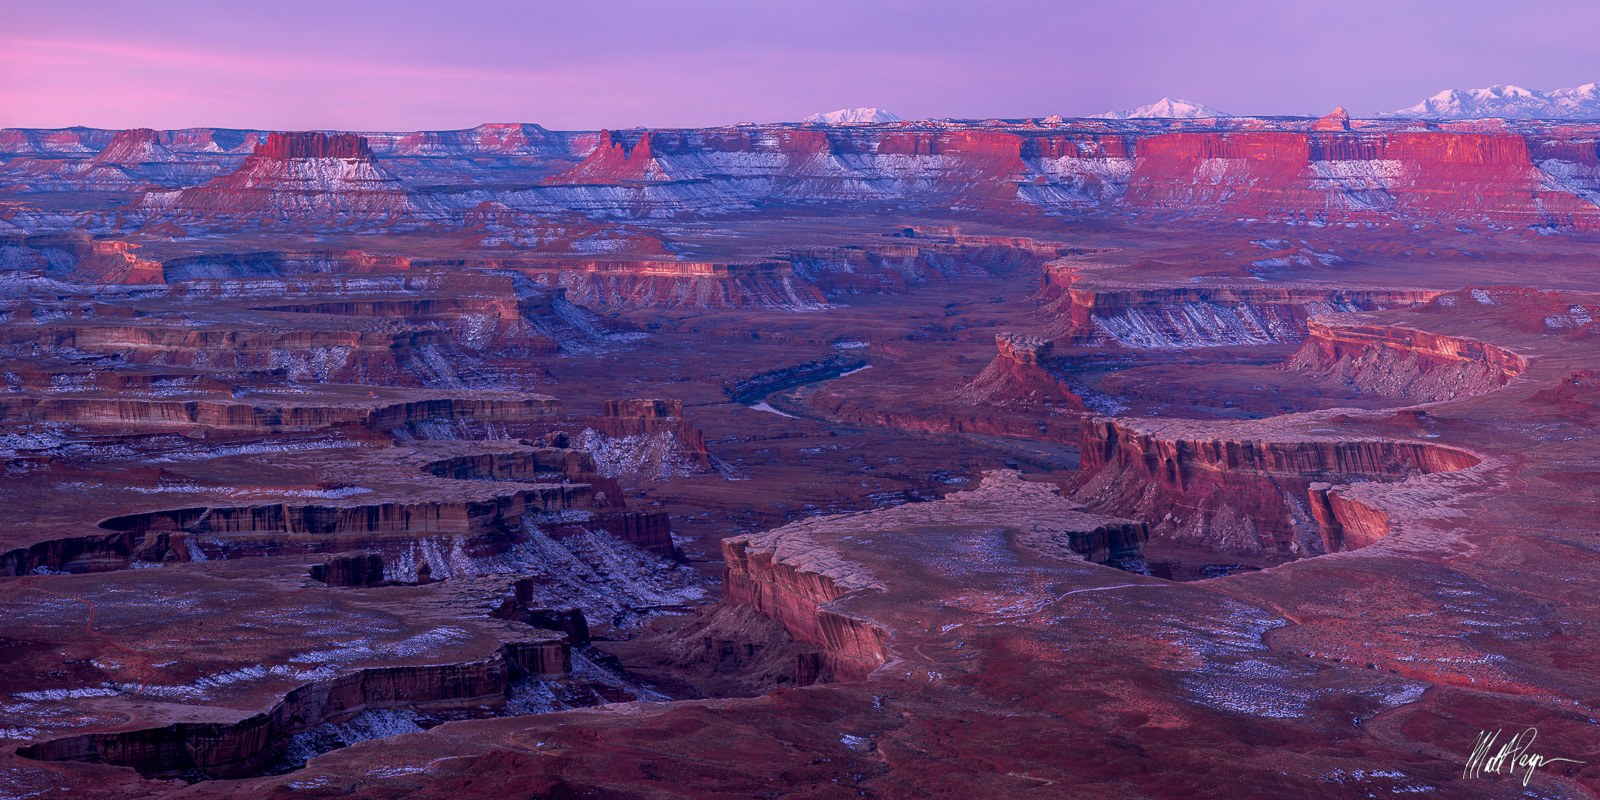 Canyonlands, Canyonlands National Park, Canyons, Grand Scenic, Green River, Green River Overlook, Island in the Sky, Mountains, Snow, Sunrise, Utah, Winter, desert, pastel, photo